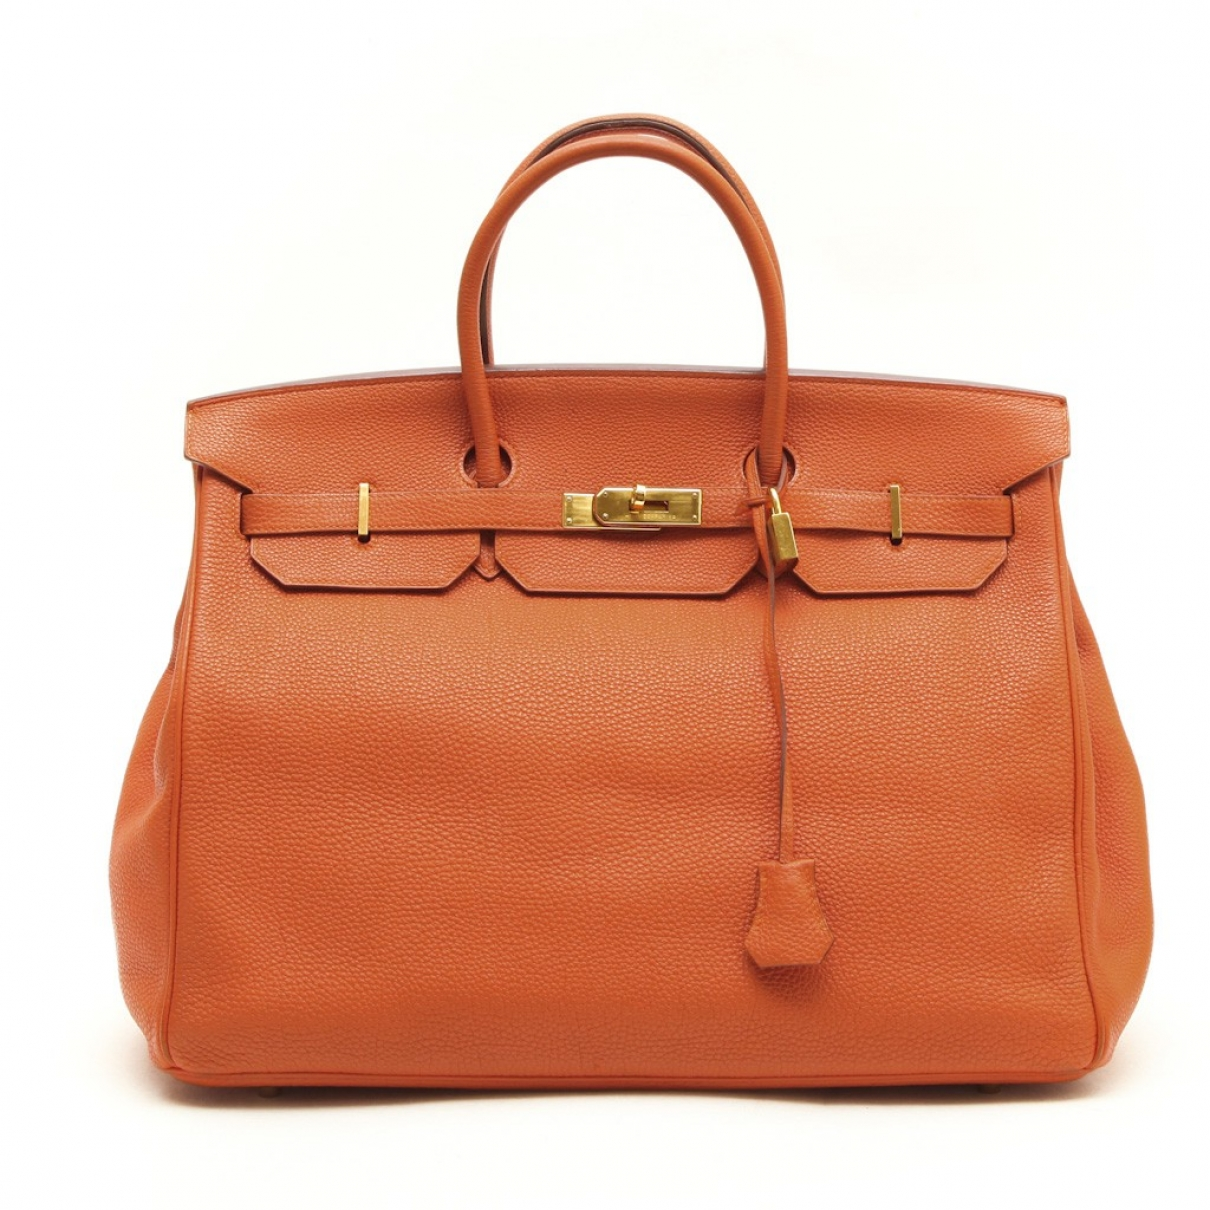 Hermès Birkin 40 Orange Leather handbag for Women \N